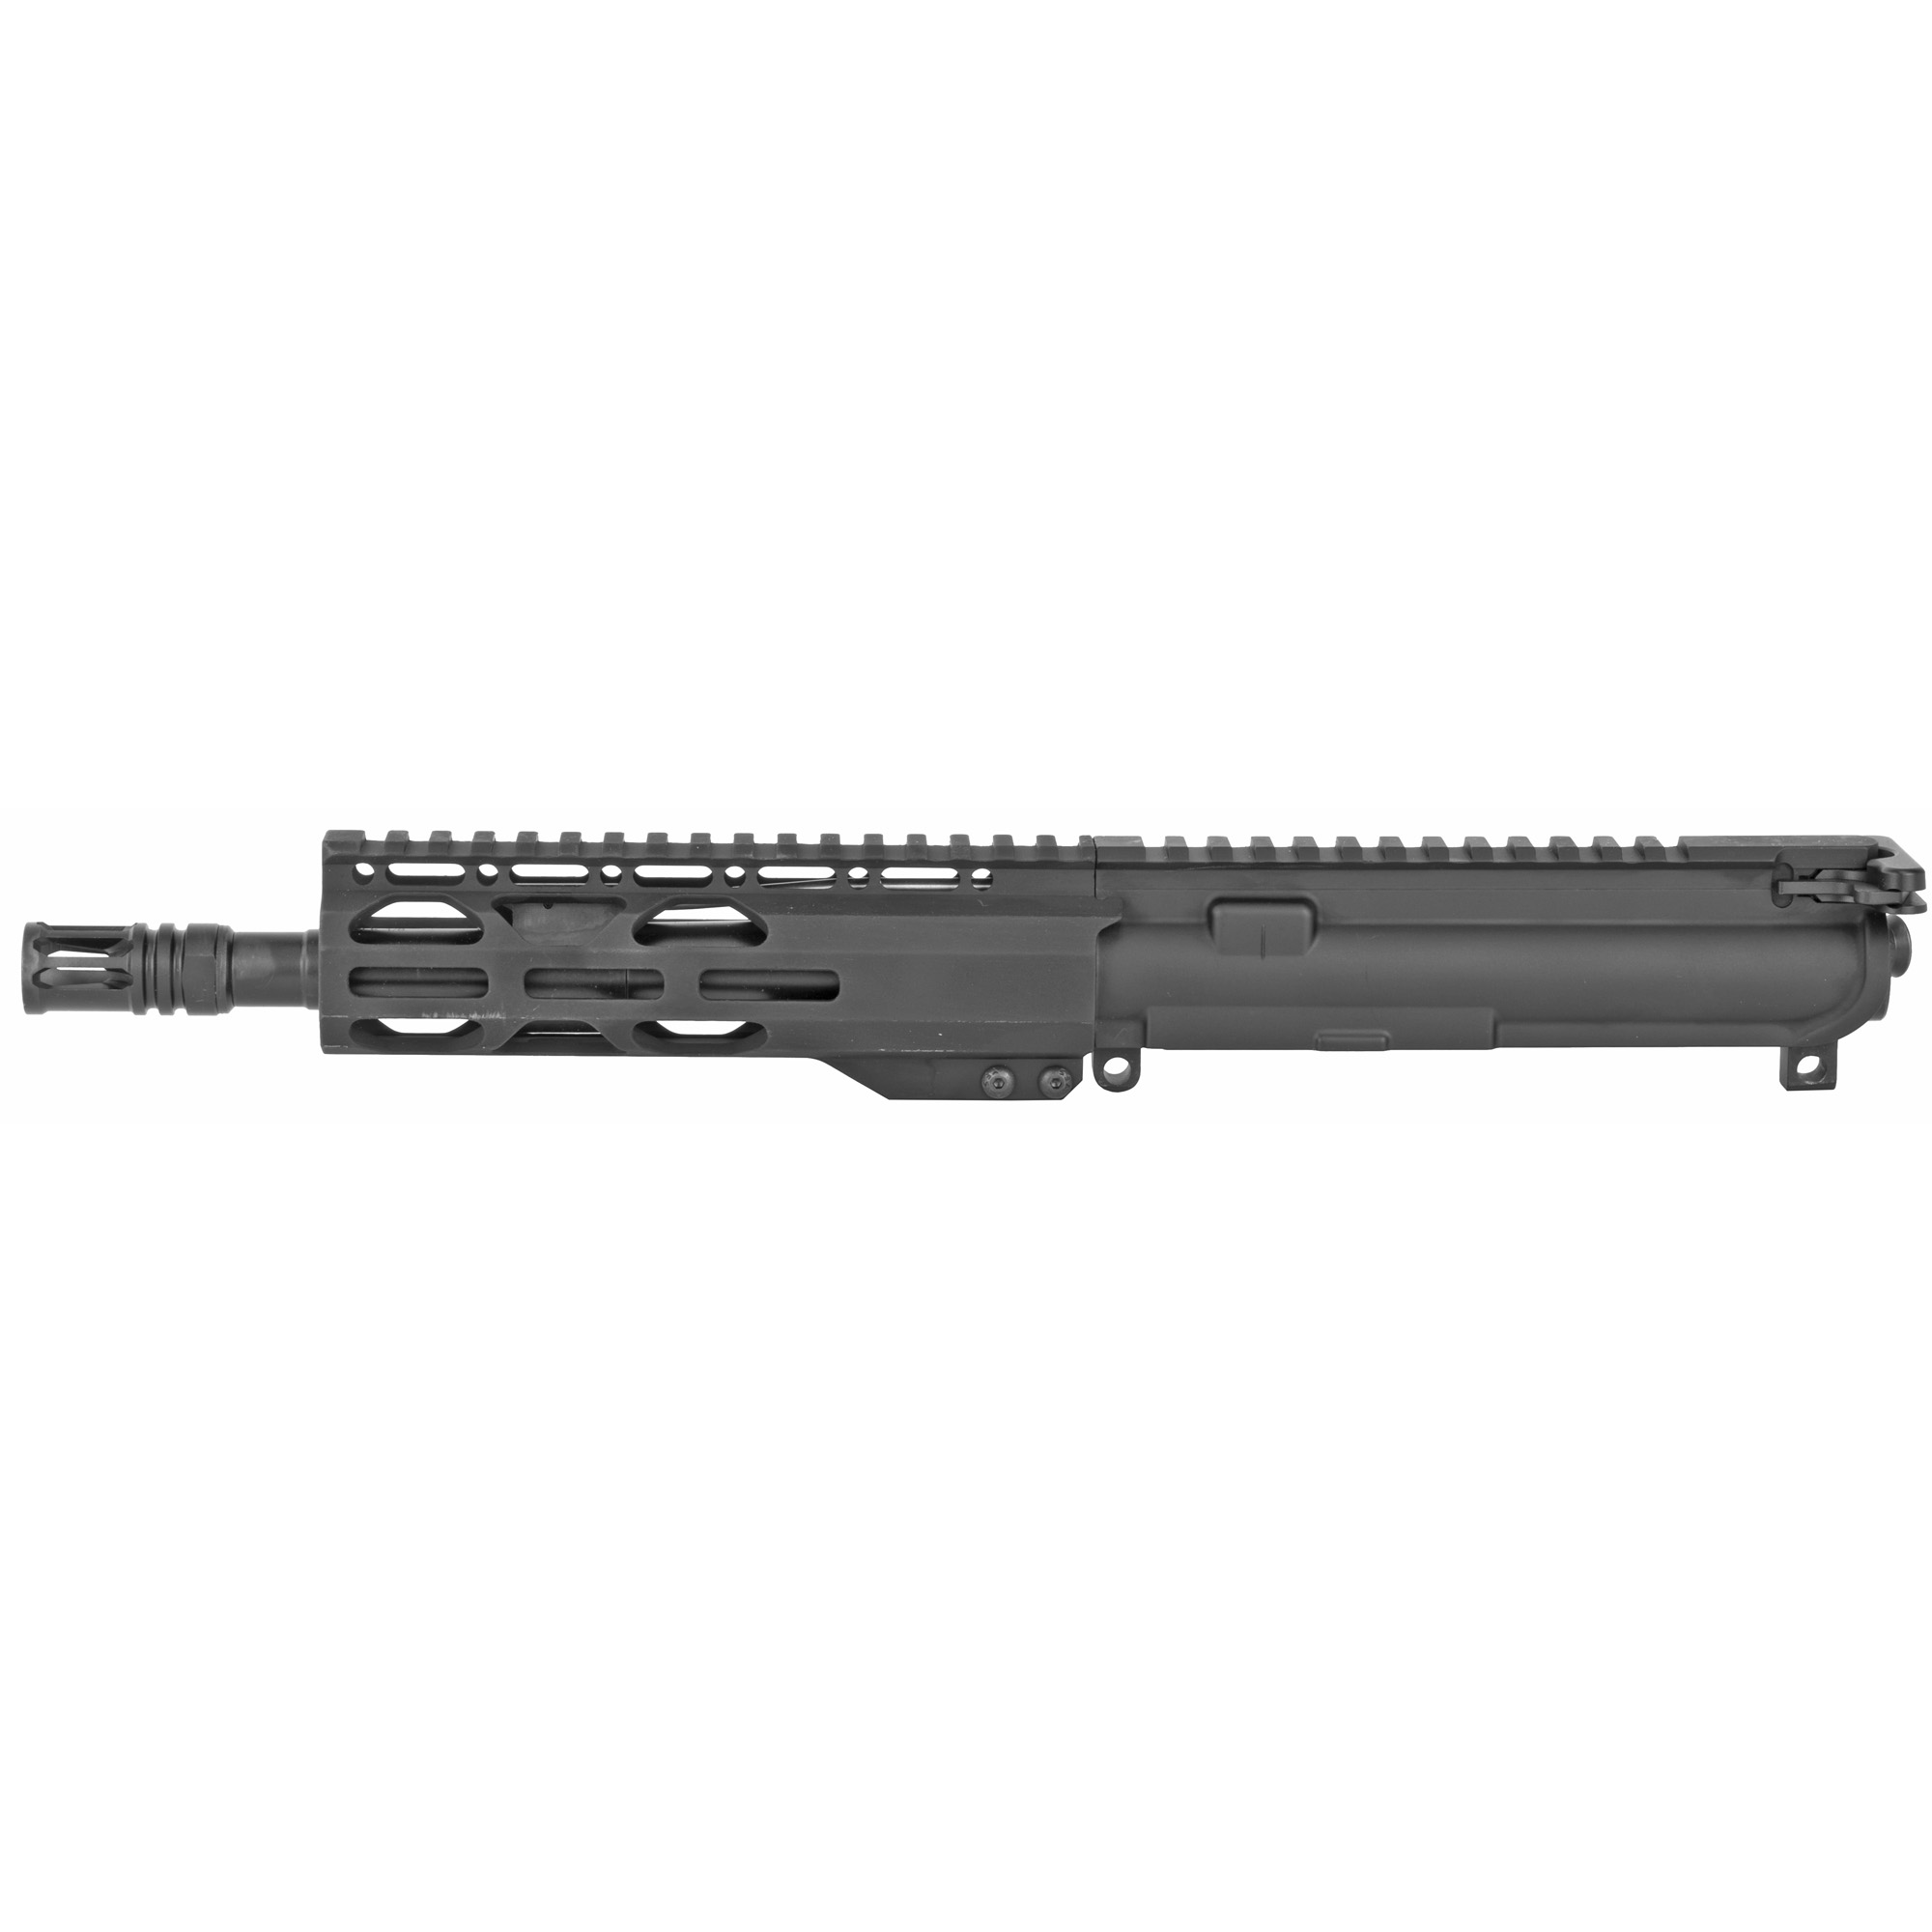 """The Radical Firearms 8.5"""" HBAR profile 300BLK is a complete MIL-STD upper ready to drop on any MIL-STD lower Receiver. Perfect for the novice or advanced shooter wanting to finish out that build and hit the range. Built with the 7"""" RPR free float rail system for increased accuracy and keeping your hands cool. No matter what your style of shooting is"""" Radical Firearms has you covered."""